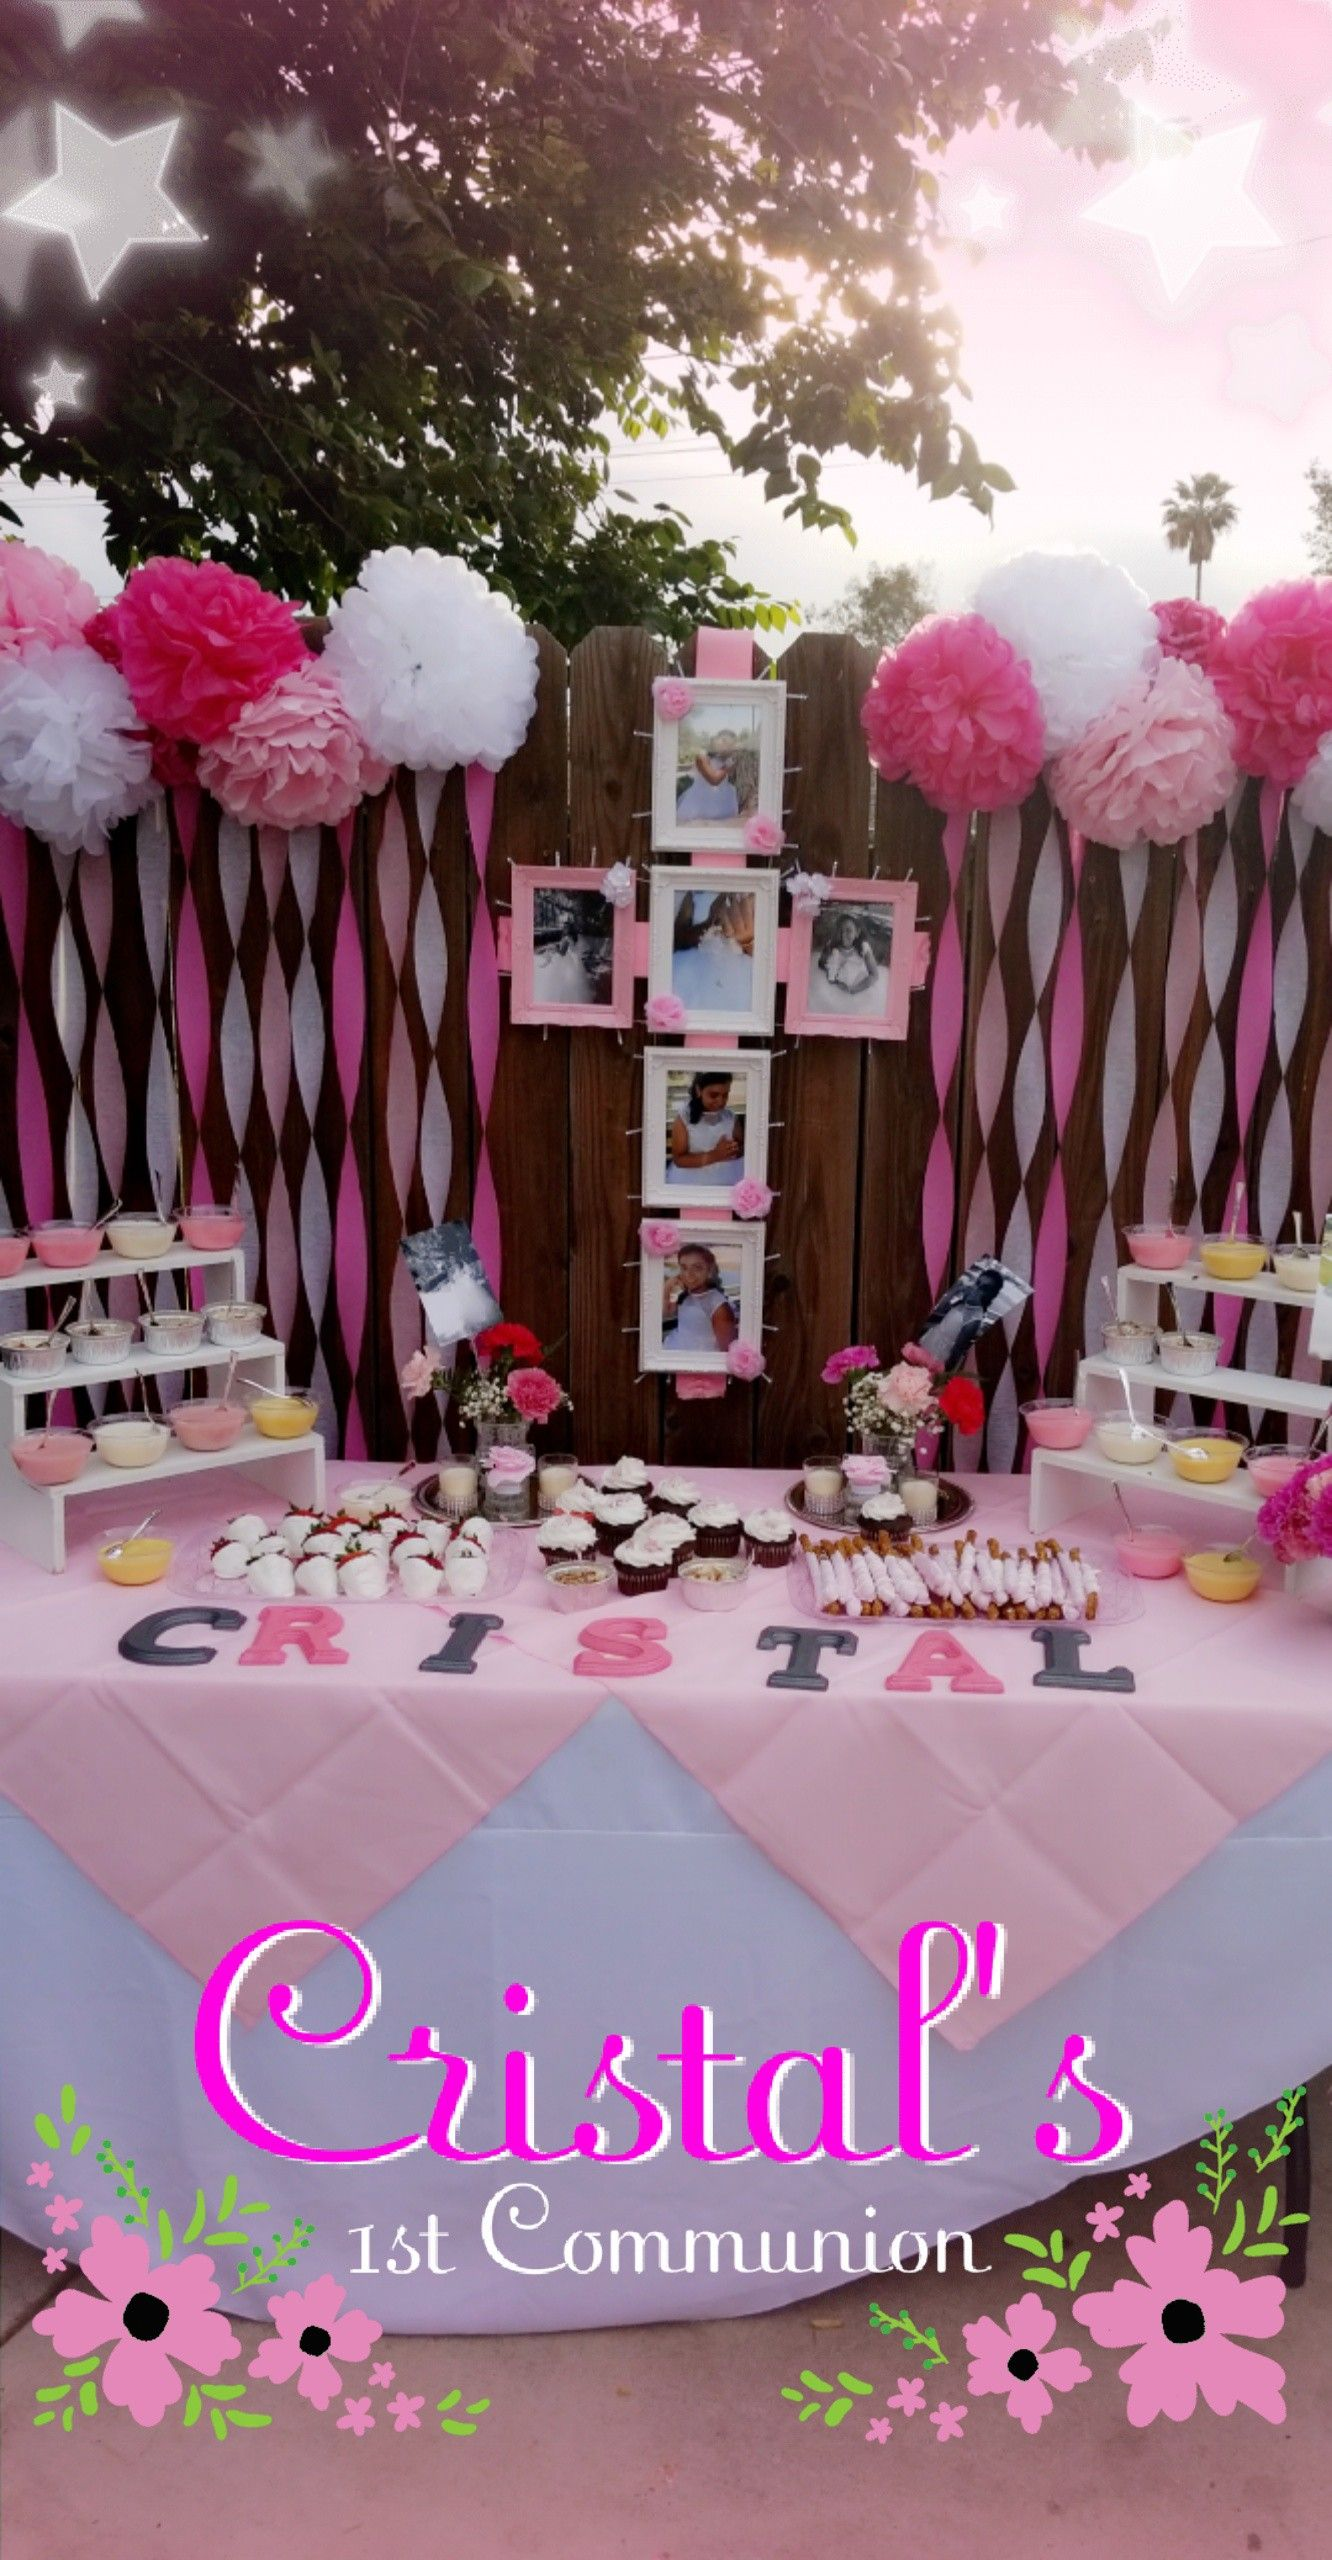 First Communion Backdrop 1st Communion Candy Table 1st Communion Decorations First First Communion Decorations Holy Communion Party First Communion Party